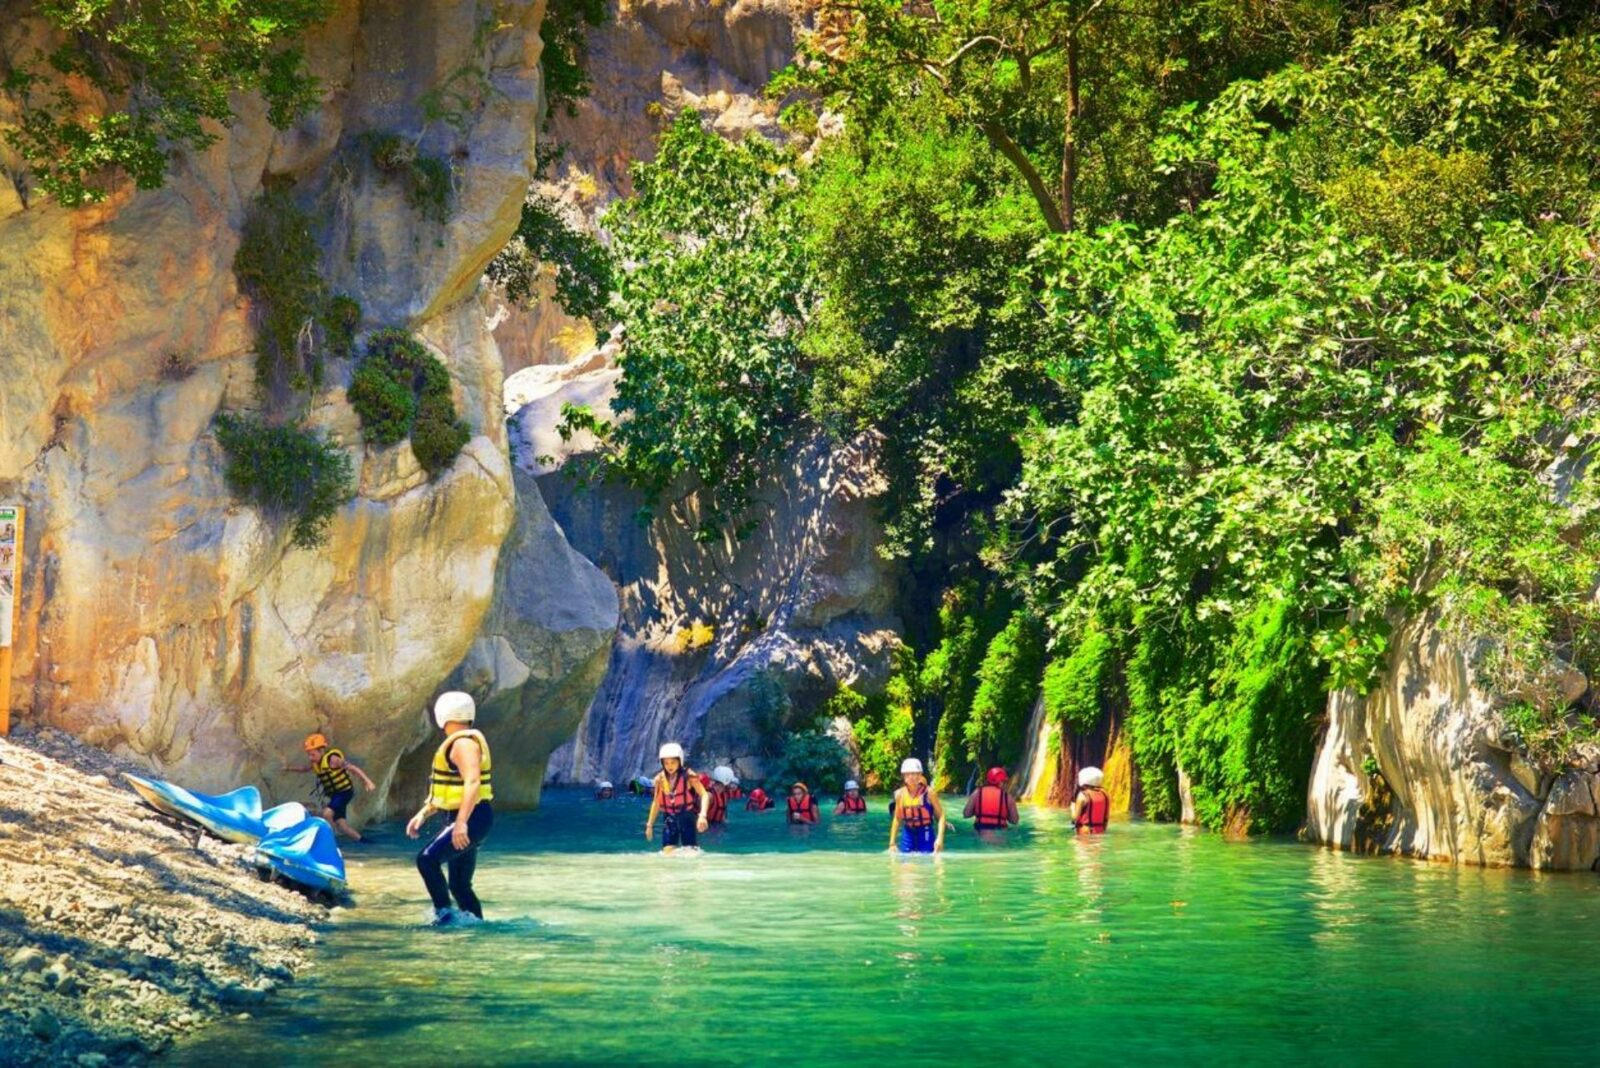 Canyoning en famille : conseils